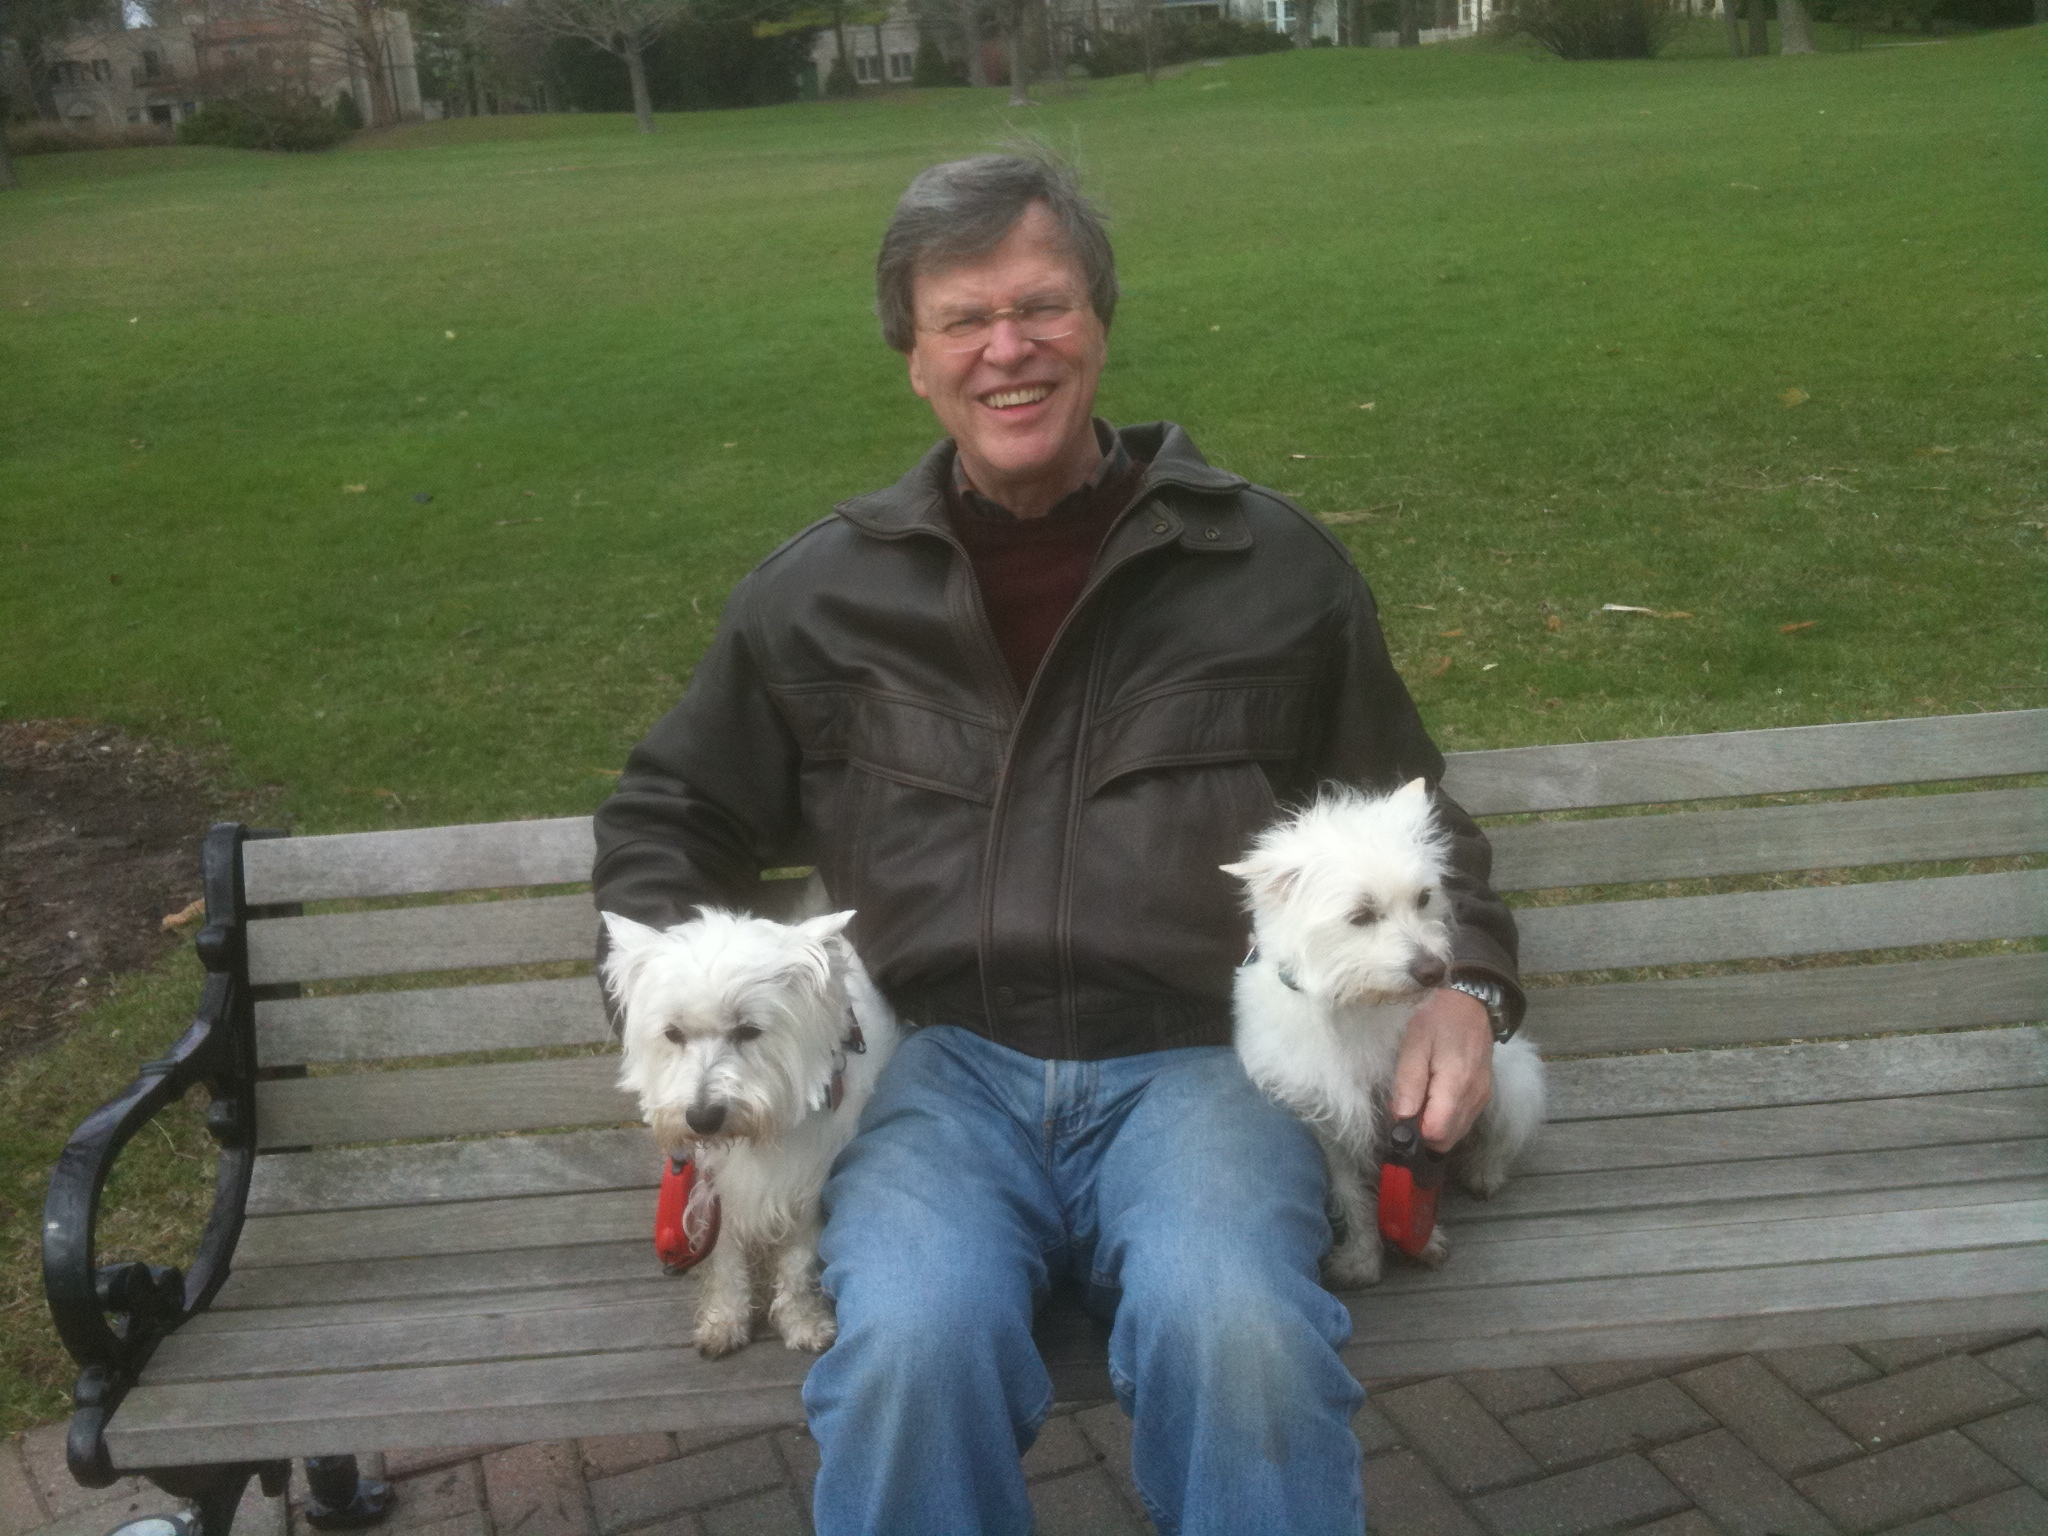 Wally and his two pups